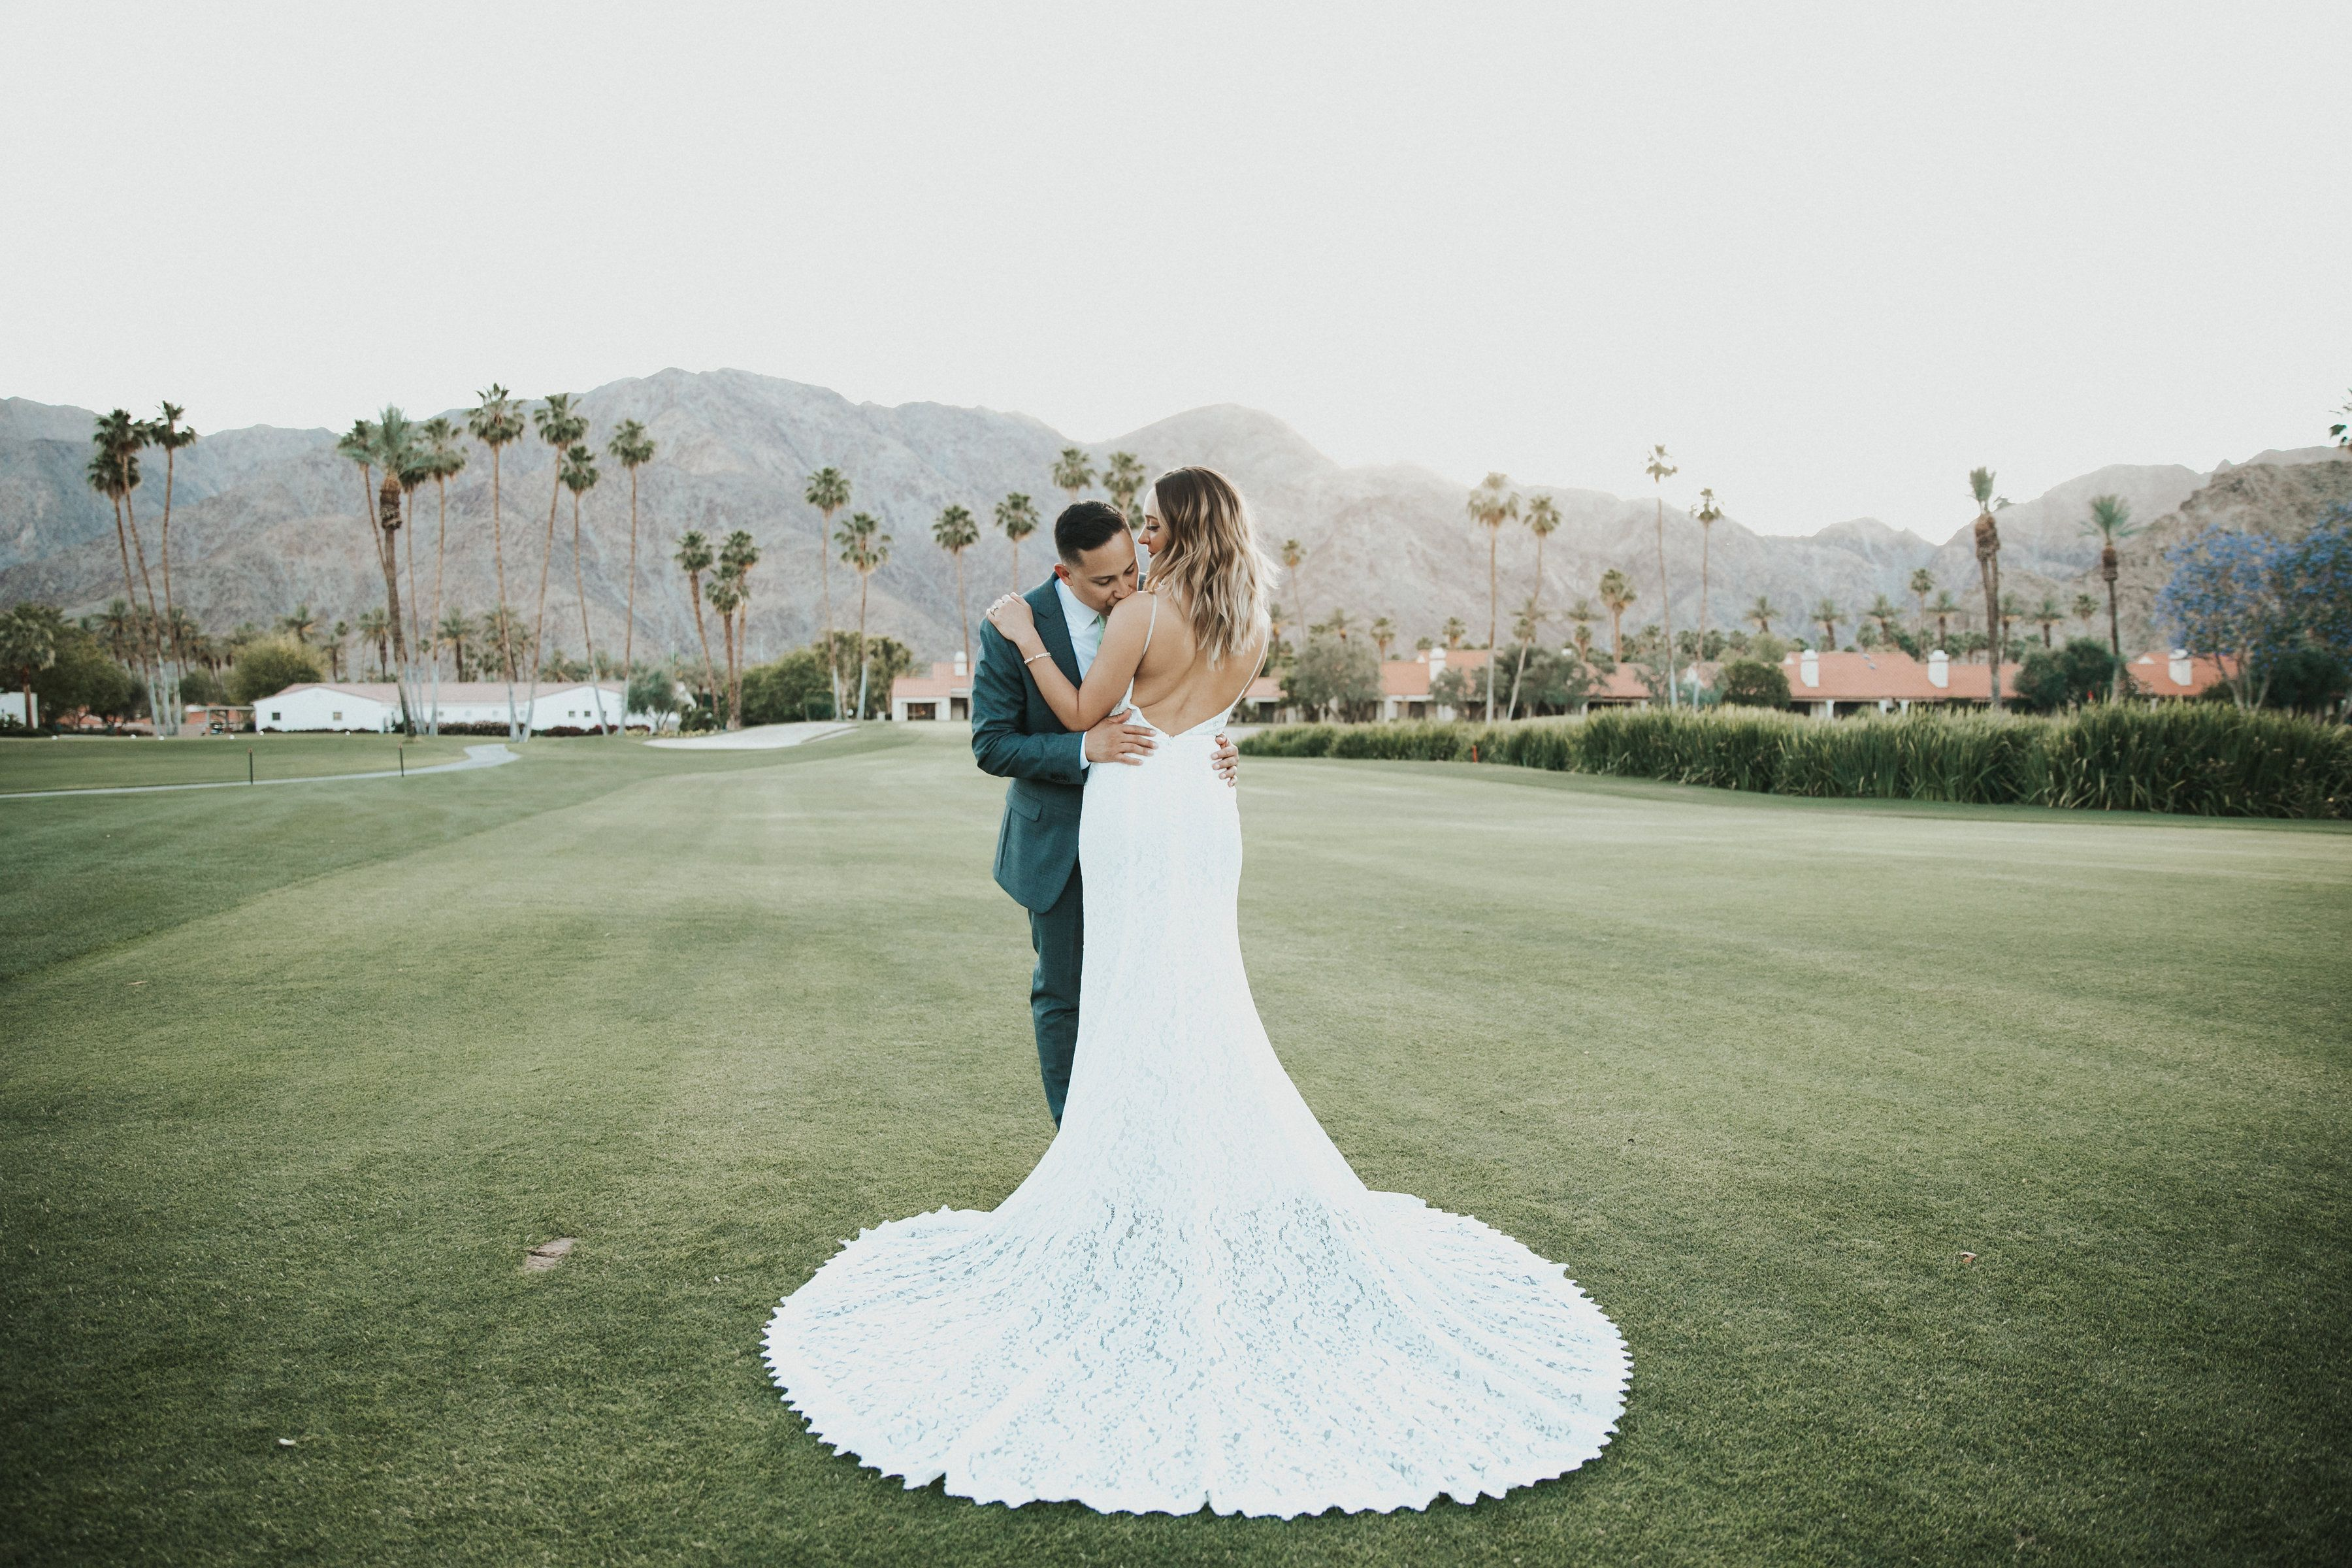 La Quinta Country Club Pure Lavish Events Southern California Wedding Planner Oc